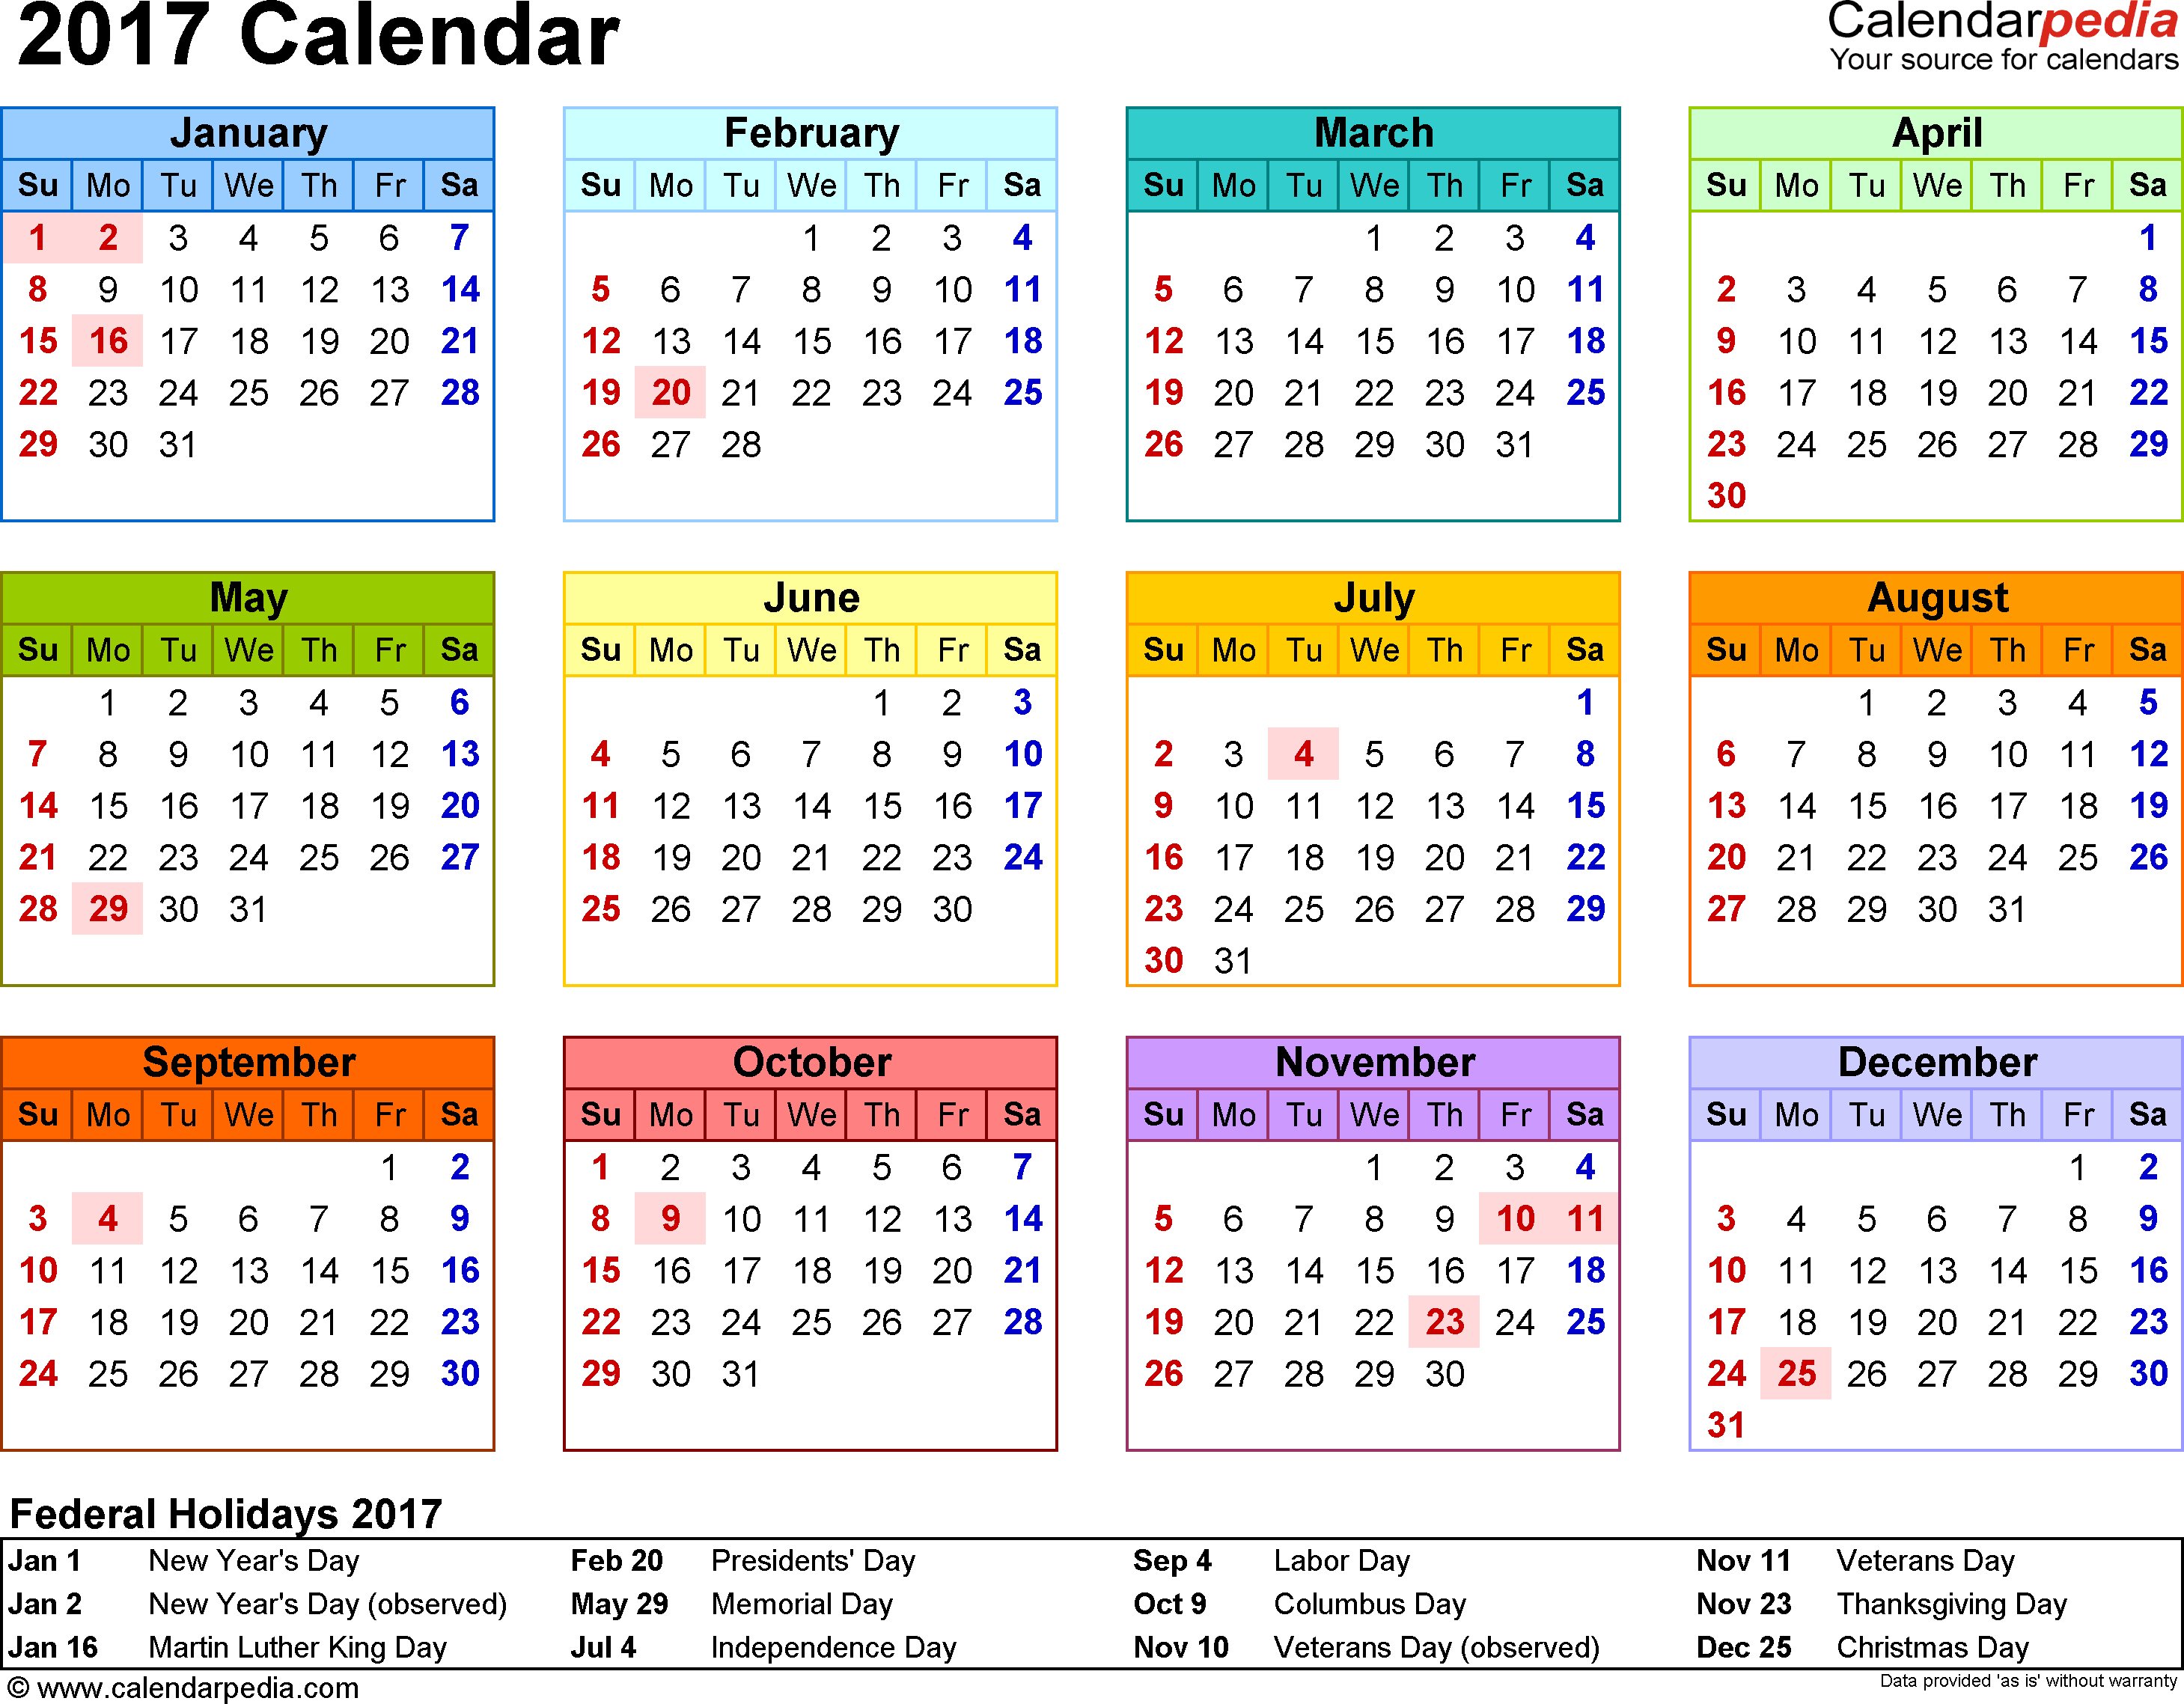 ... of 2017 (With Federal Public Holidays of USA) – Printable Calendar